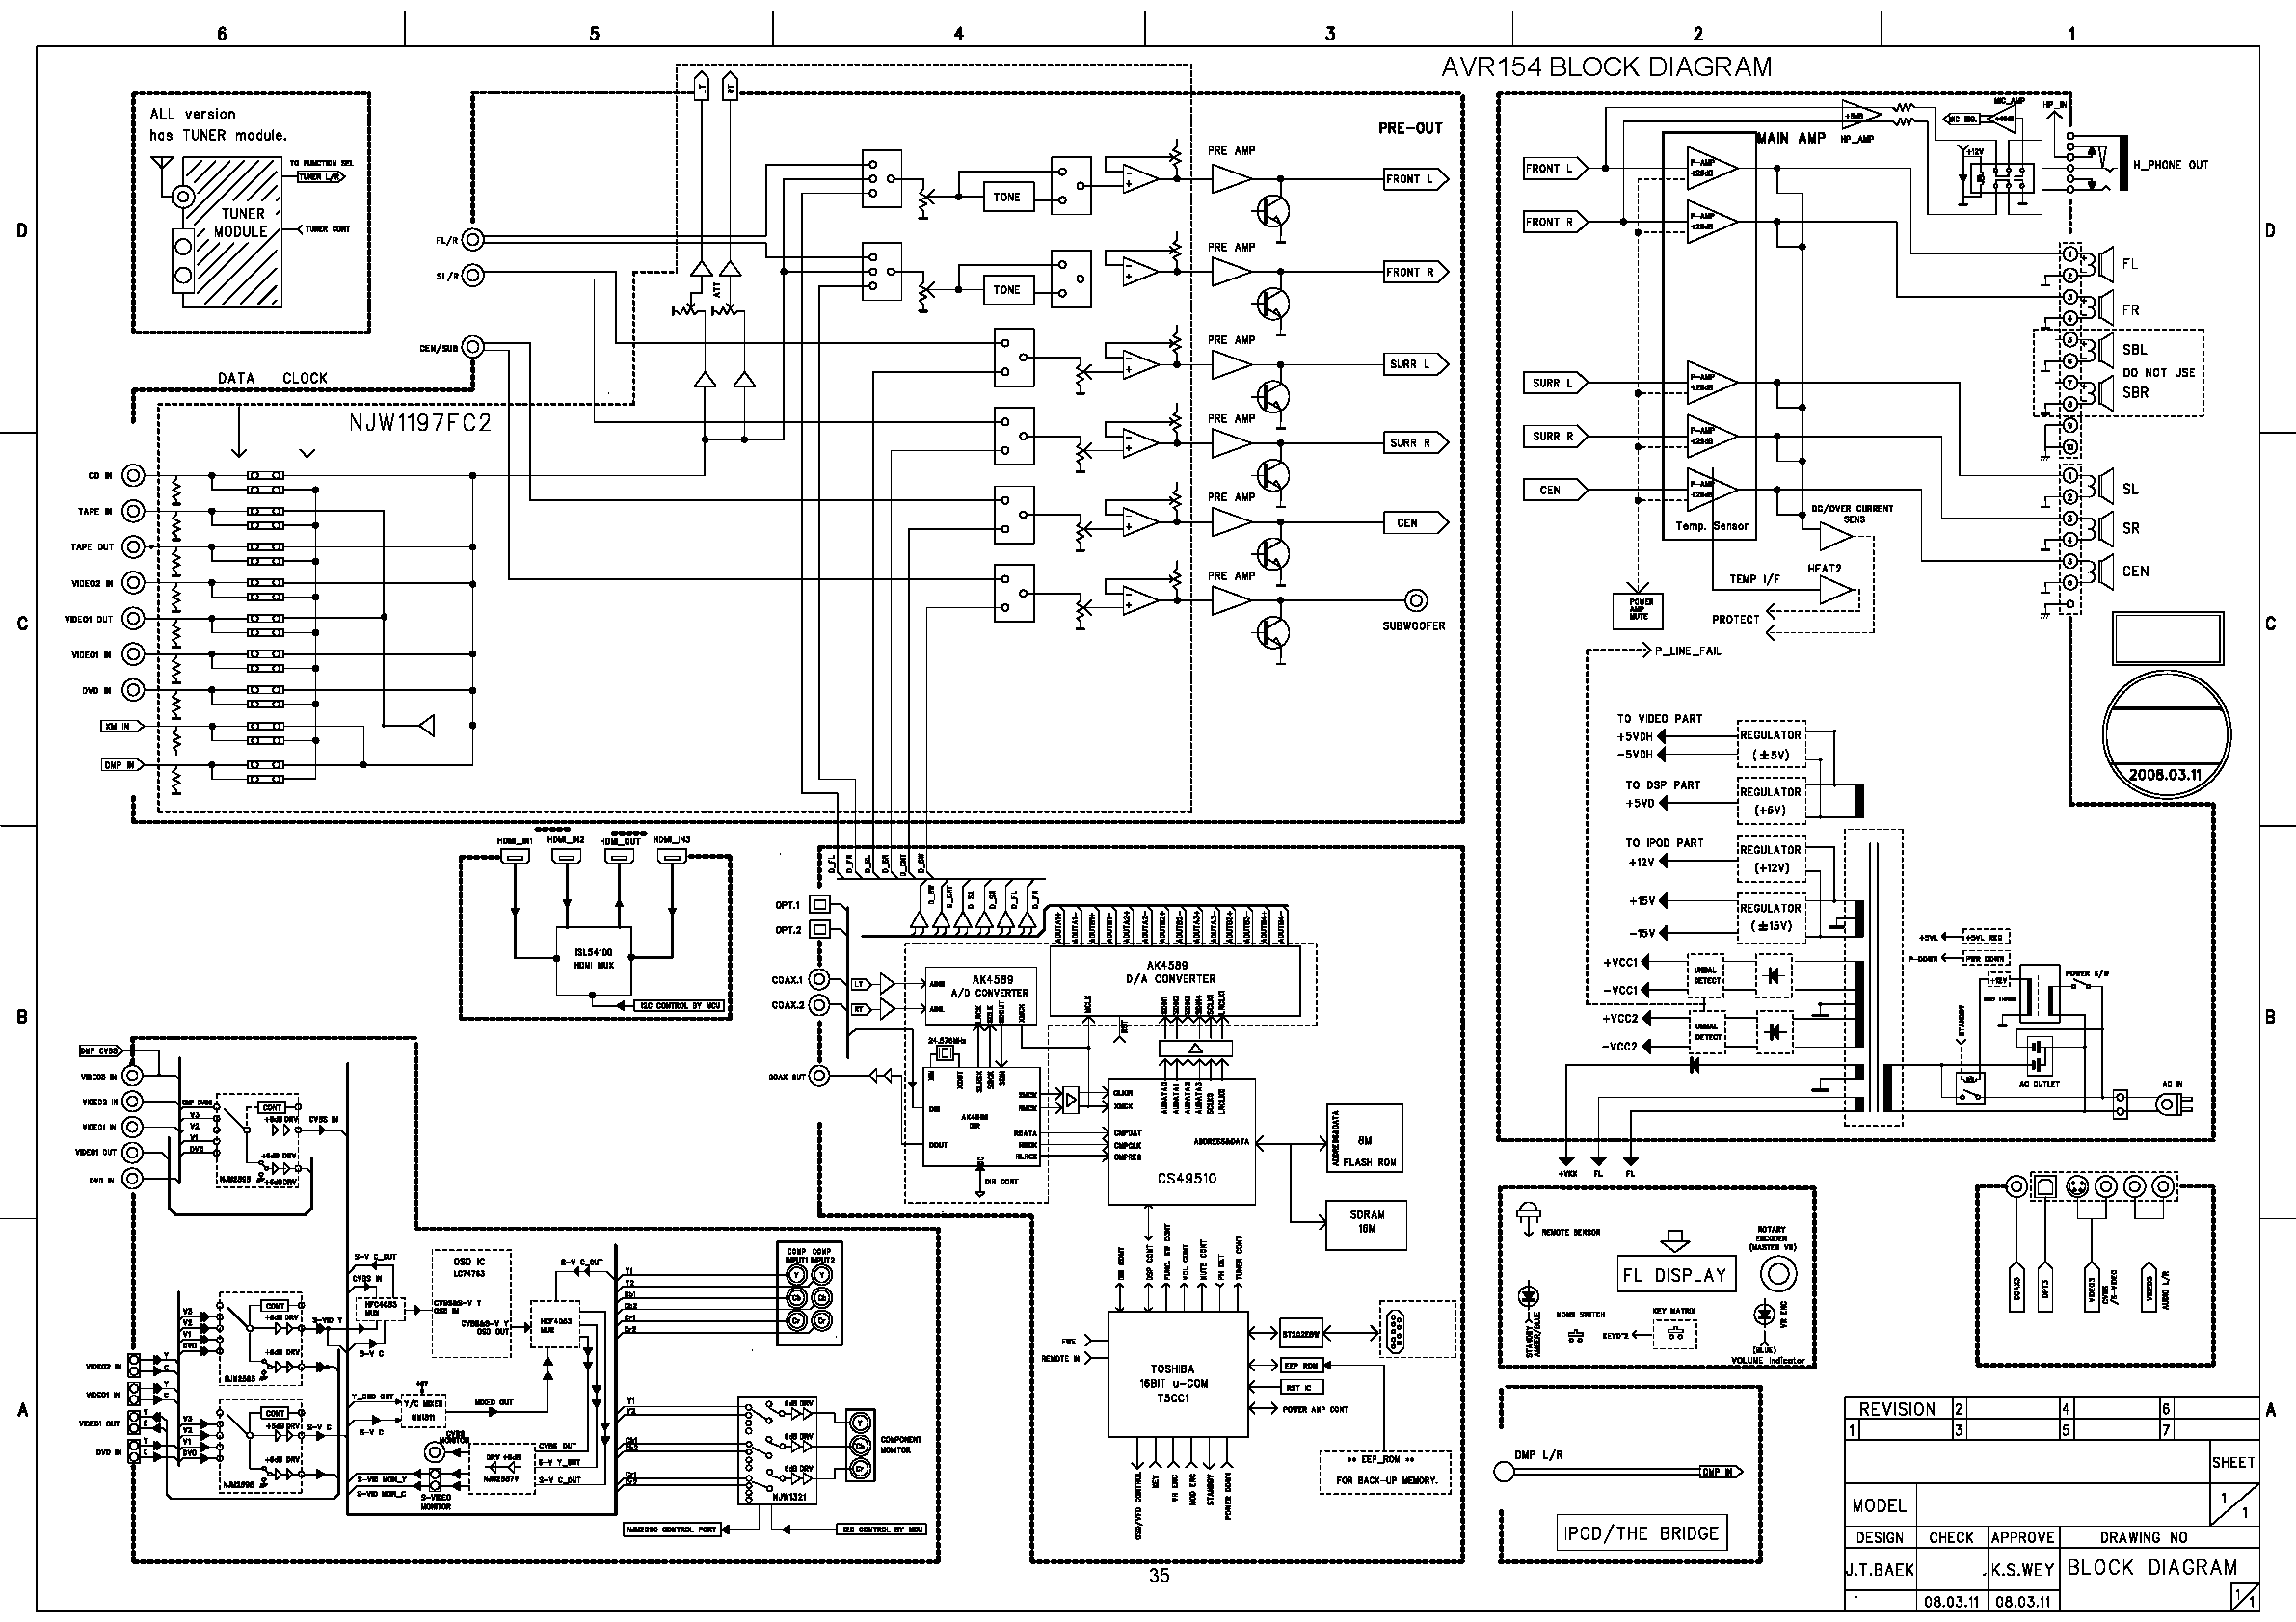 L200 wiring diagram wiring diagram manual mitsubishi l200 wiring diagram blueraritan info l200 wiring diagram l200 wiring diagram pdf l200 wiring diagram cheapraybanclubmaster